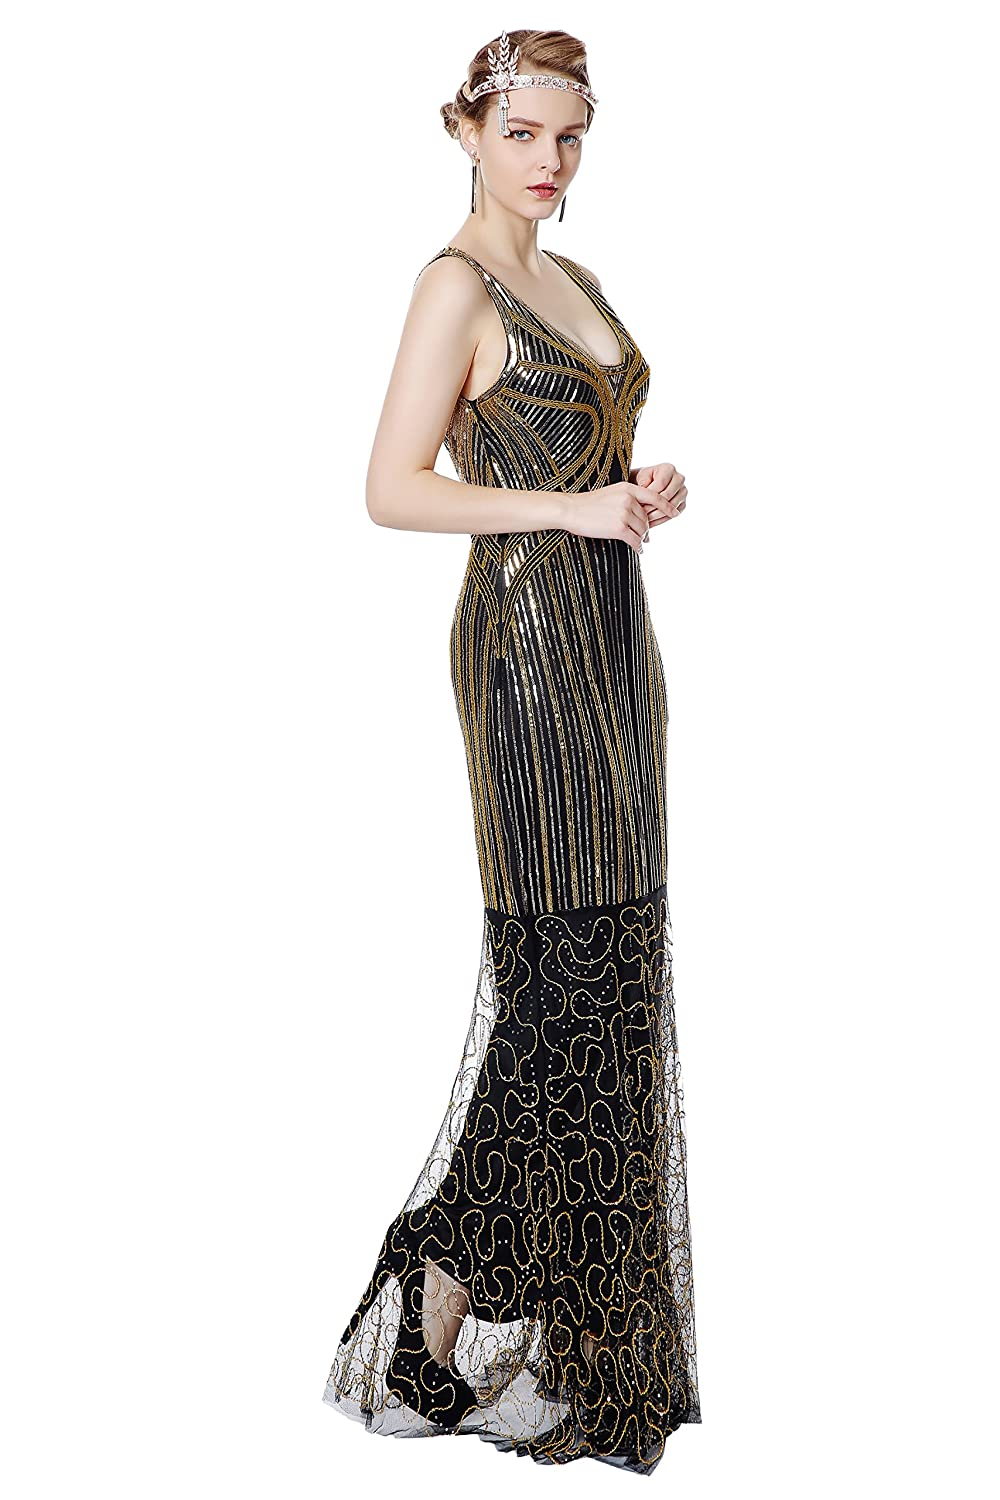 1920s Evening Dresses & Formal Gowns Metme Womens 1920s Inspired Sequins Art Deco Mermaid Evening Party Dress $42.99 AT vintagedancer.com